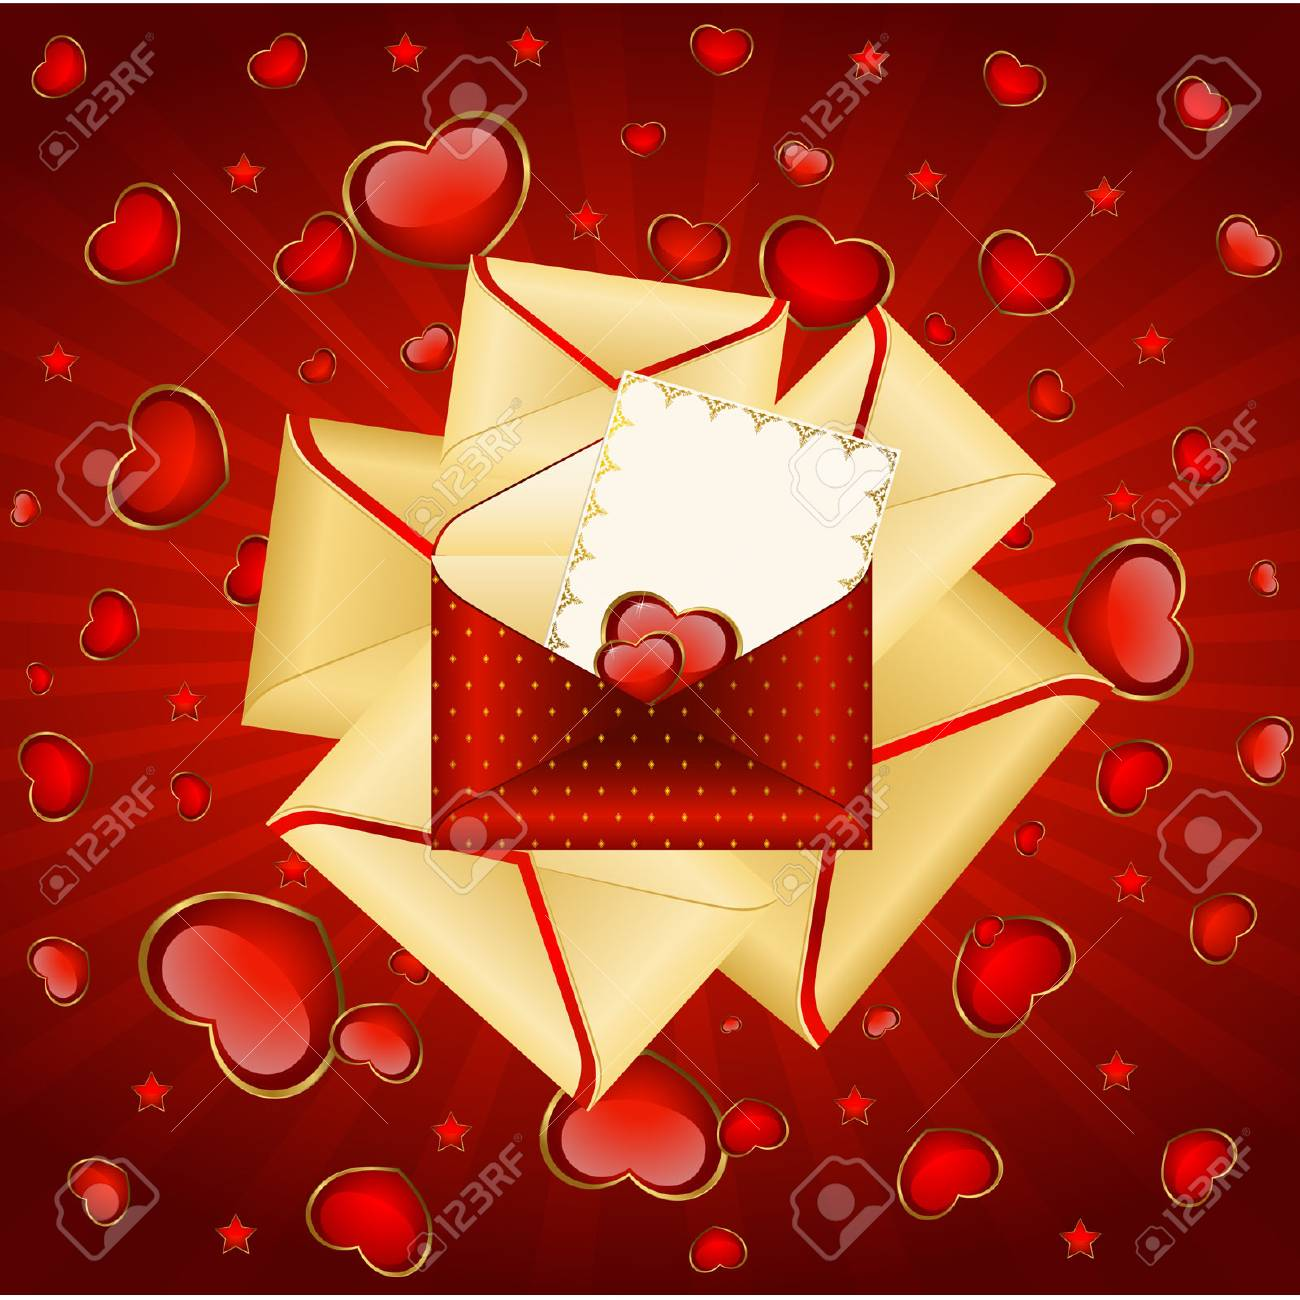 Celebratory envelopes with red hearts Stock Vector - 9089564